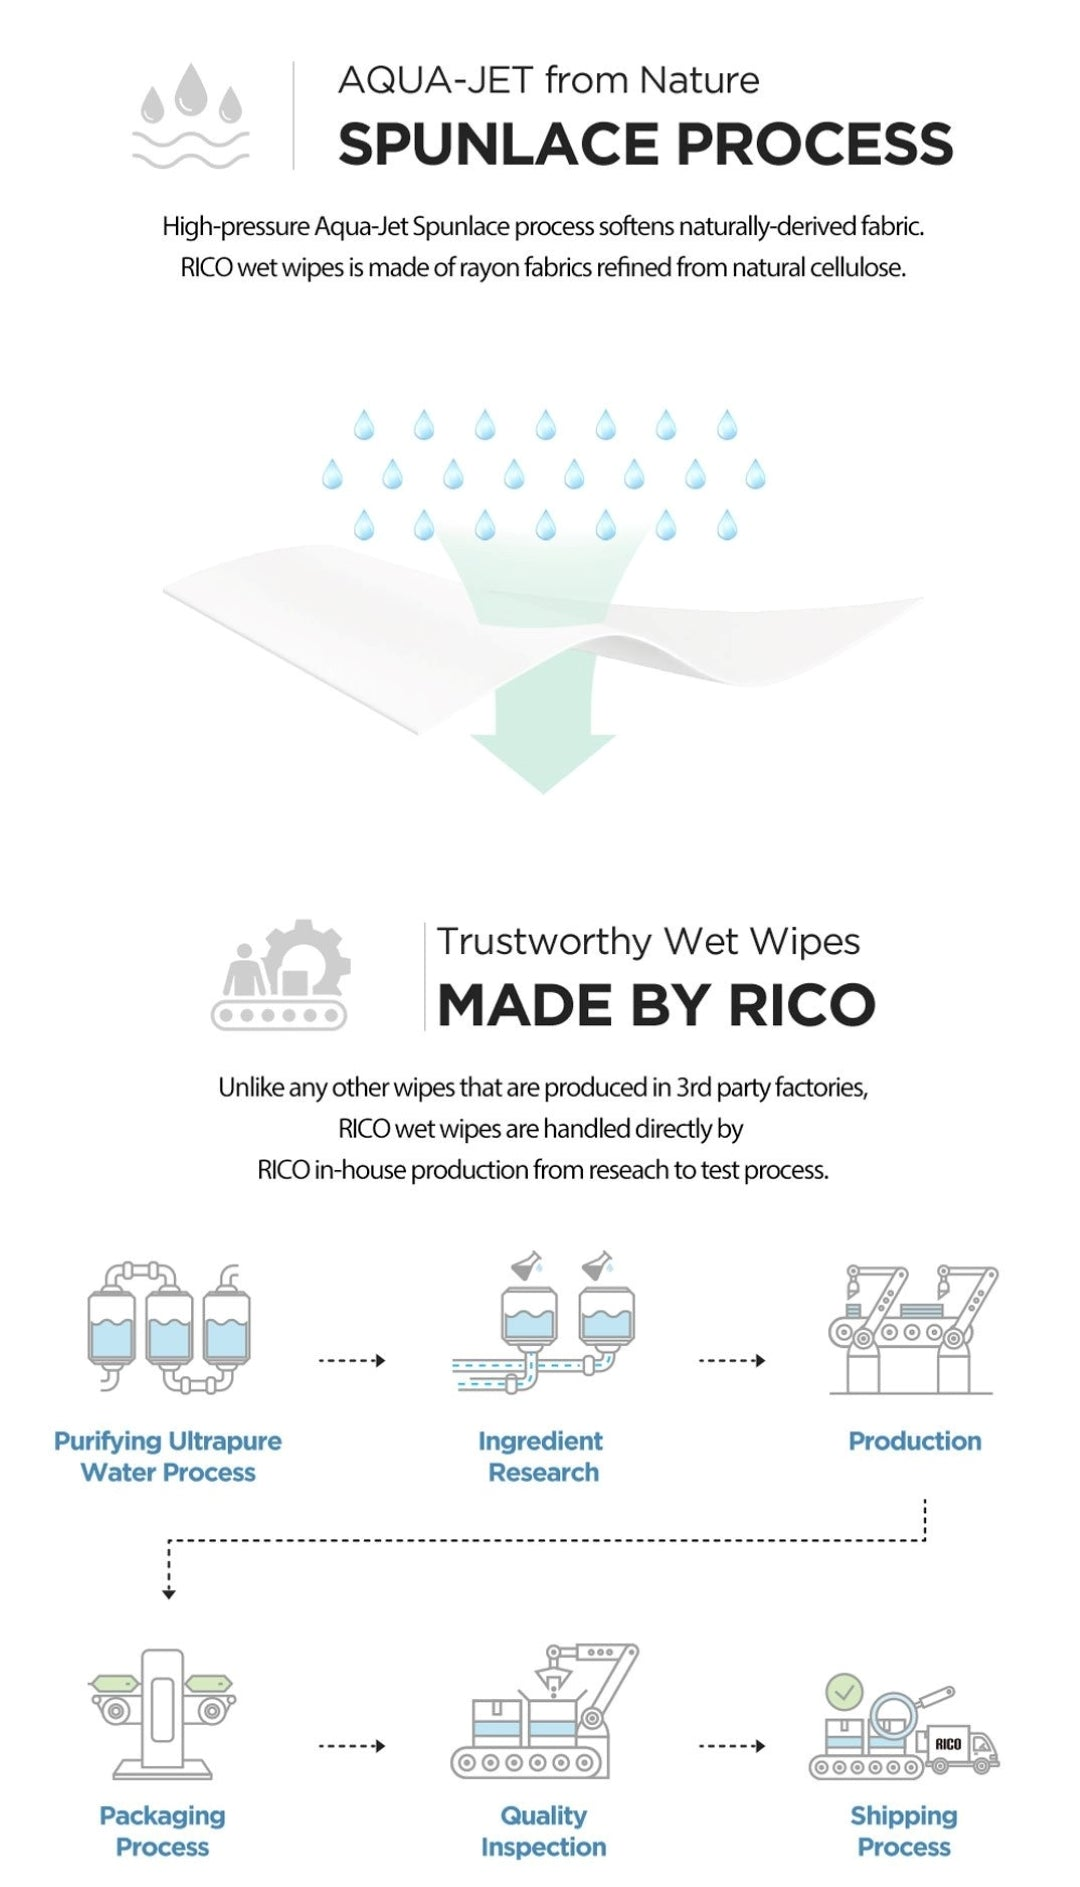 Safe Production by RICO